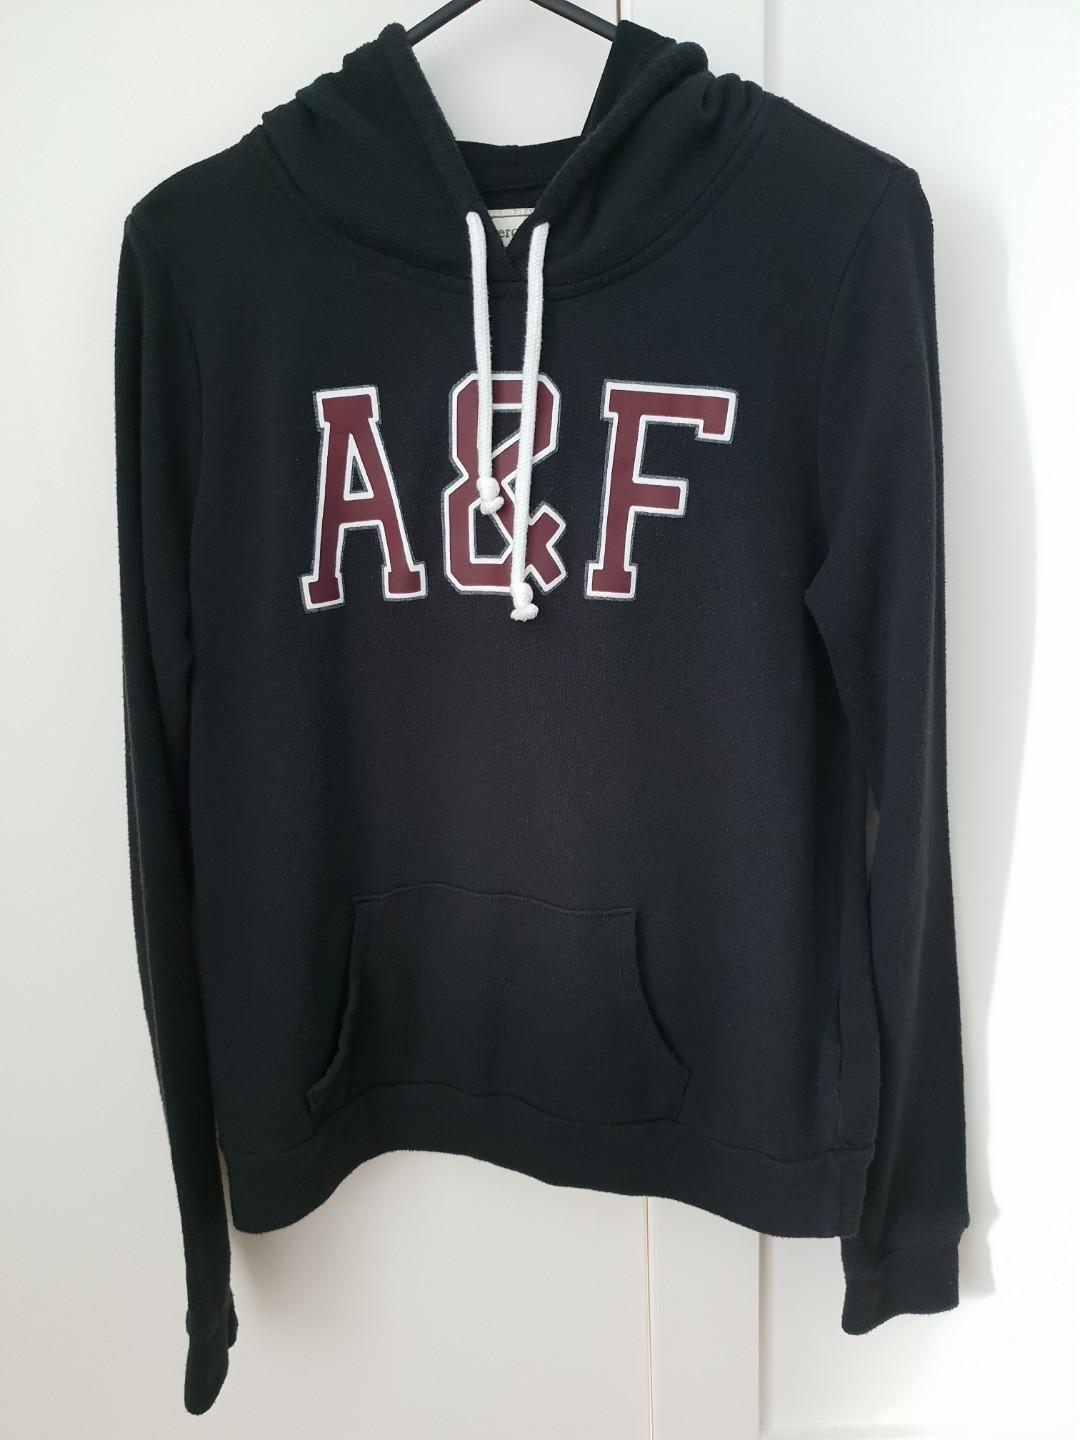 Abercrombie and Fitch navy blue logo hoodie / pullover